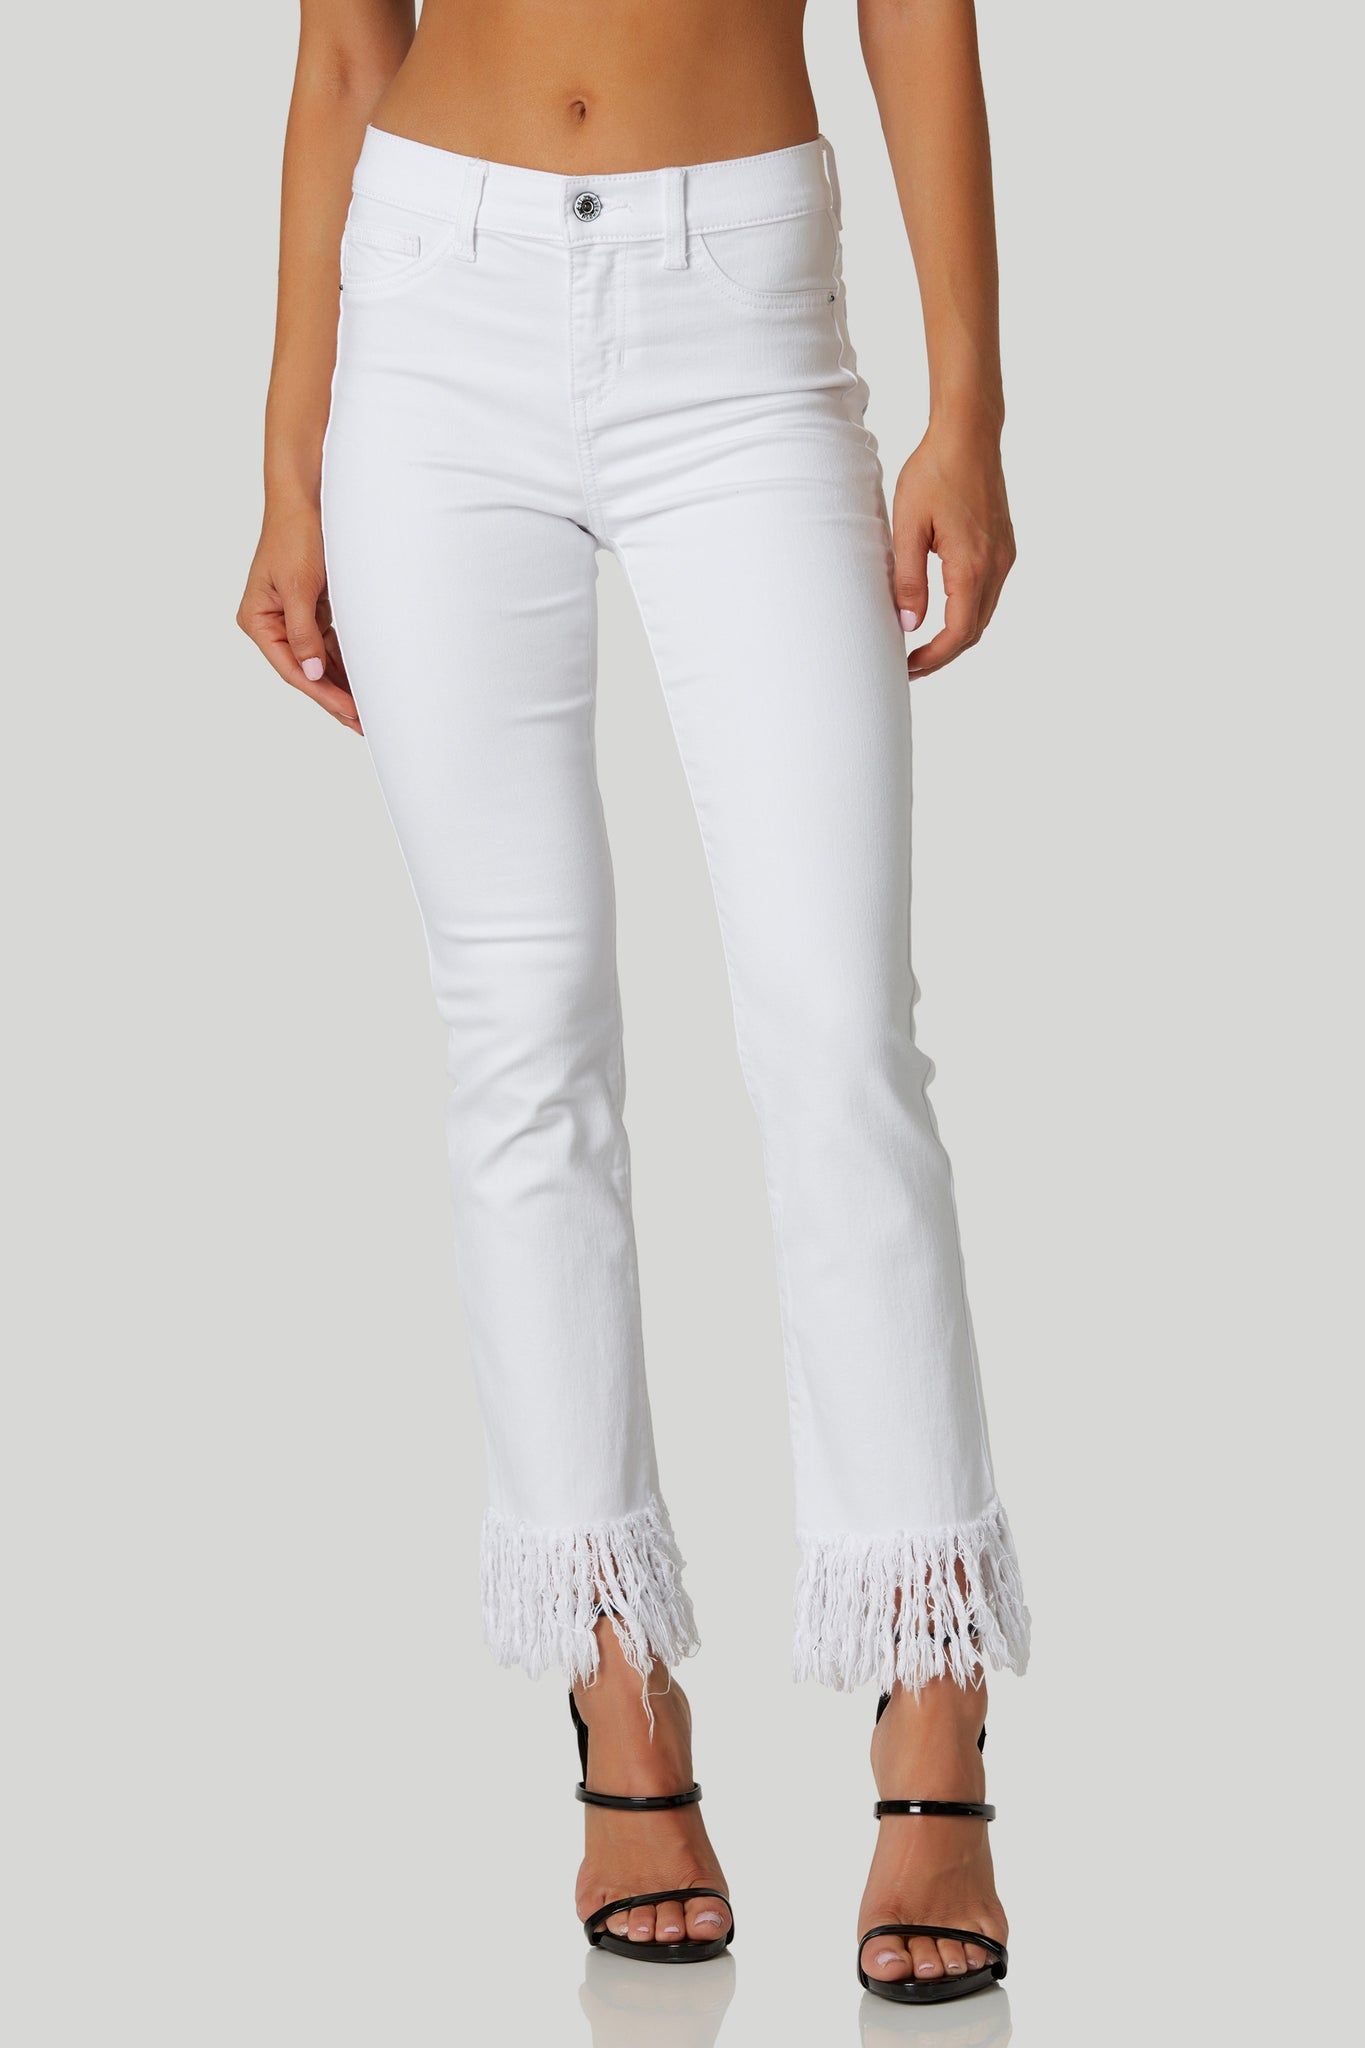 Chic mid rise jeans with trendy frayed hem finish. 5 pocket design with button and zip closure.